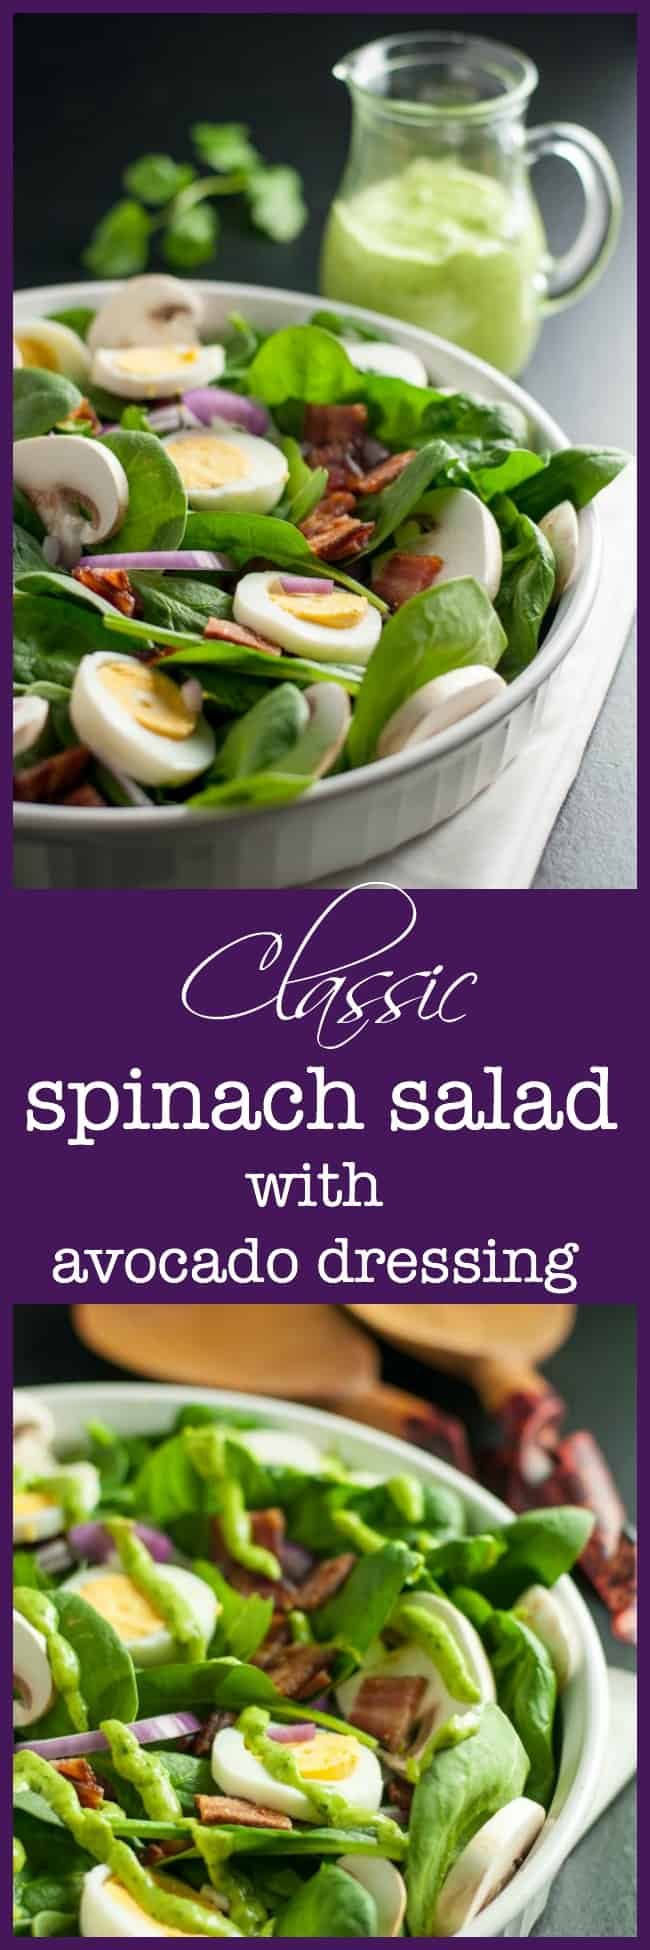 Classic Spinach Salad with Dairy-Free Creamy Avocado Dressing. Love spinach salad but hate the high-fat buttermilk dressing? Try this updated paleo spinach salad with creamy dairy-free avocado dressing.